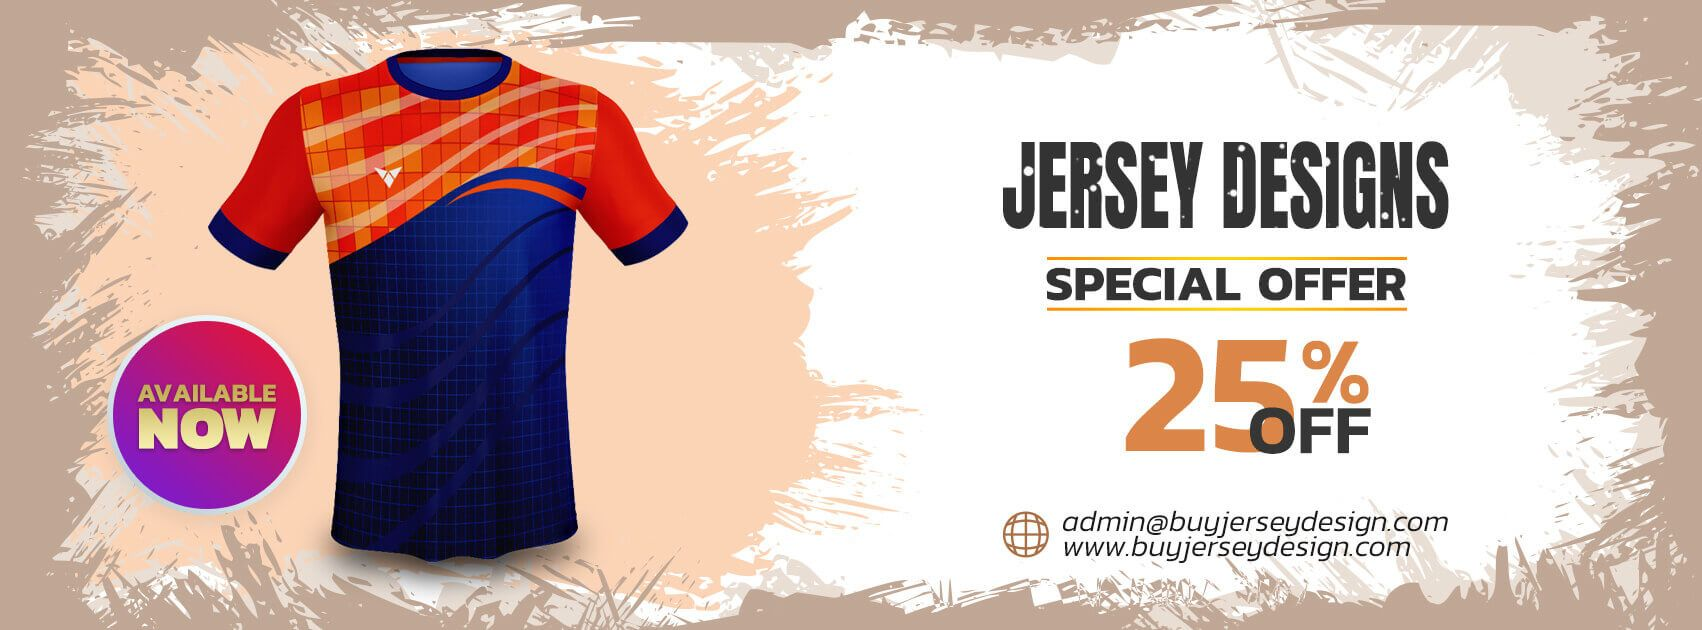 Download Jersey Designs Psd Download Jersey Design Black Yellow And White Custom Jerseys